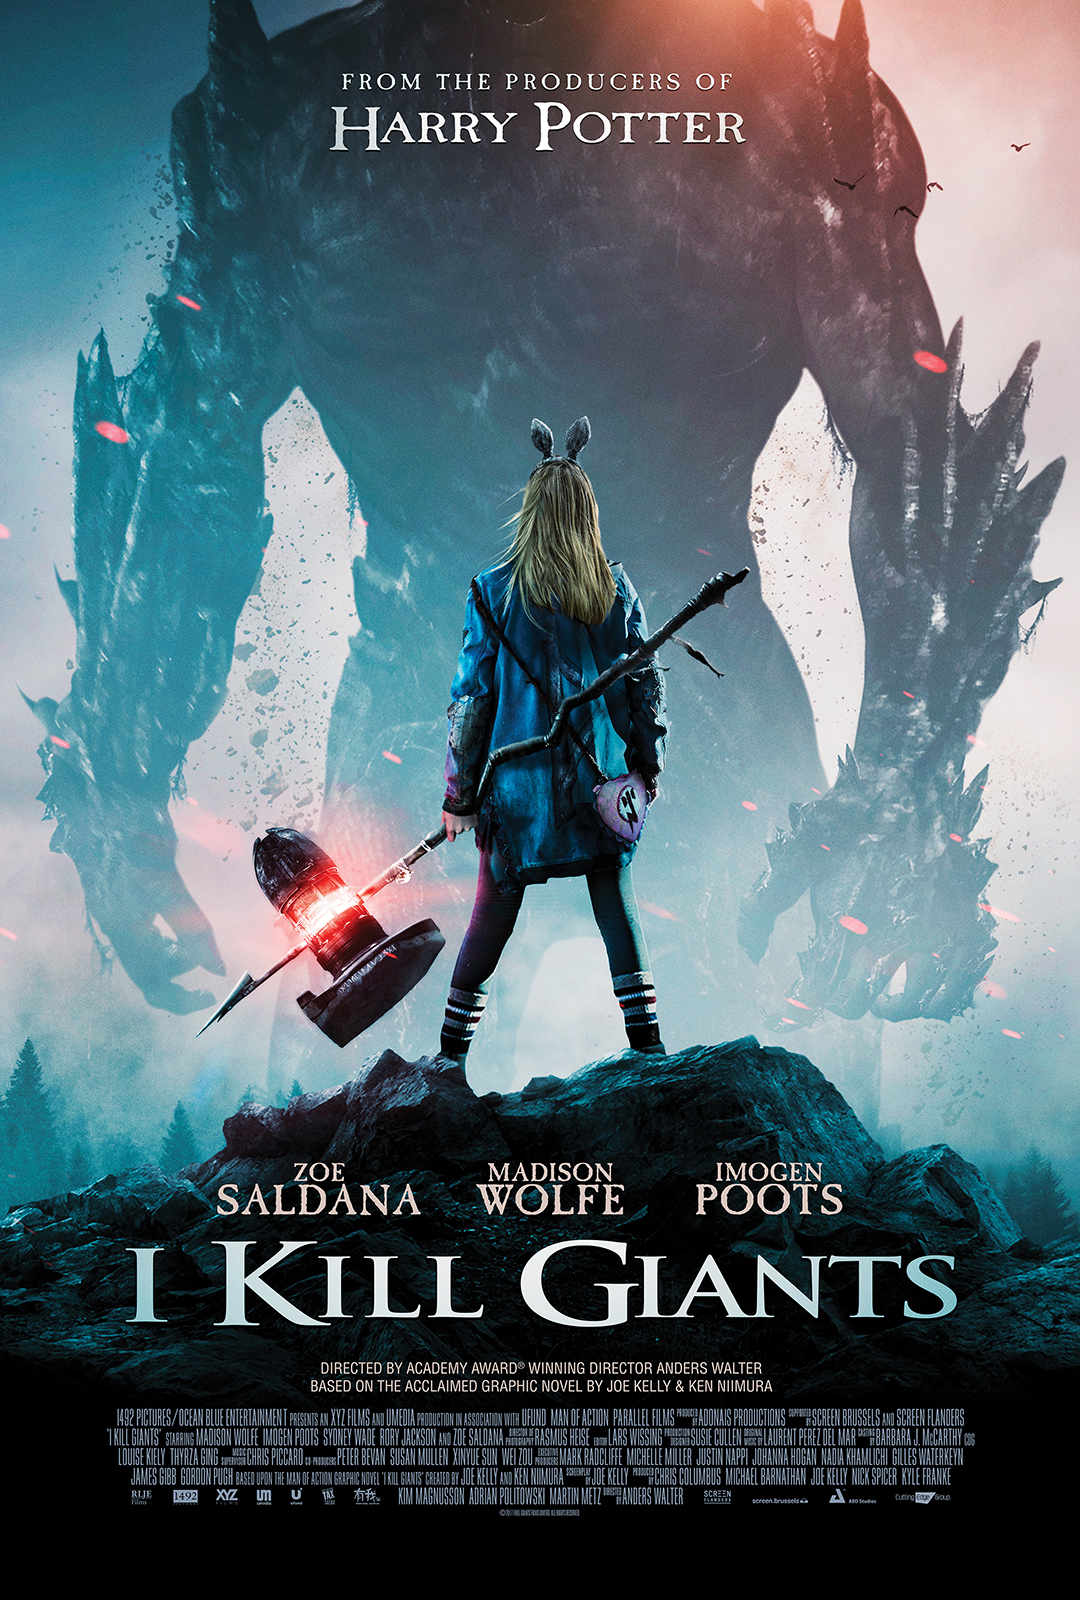 I KILL GIANTS: A BATTLE OF GOOD VS. EVIL